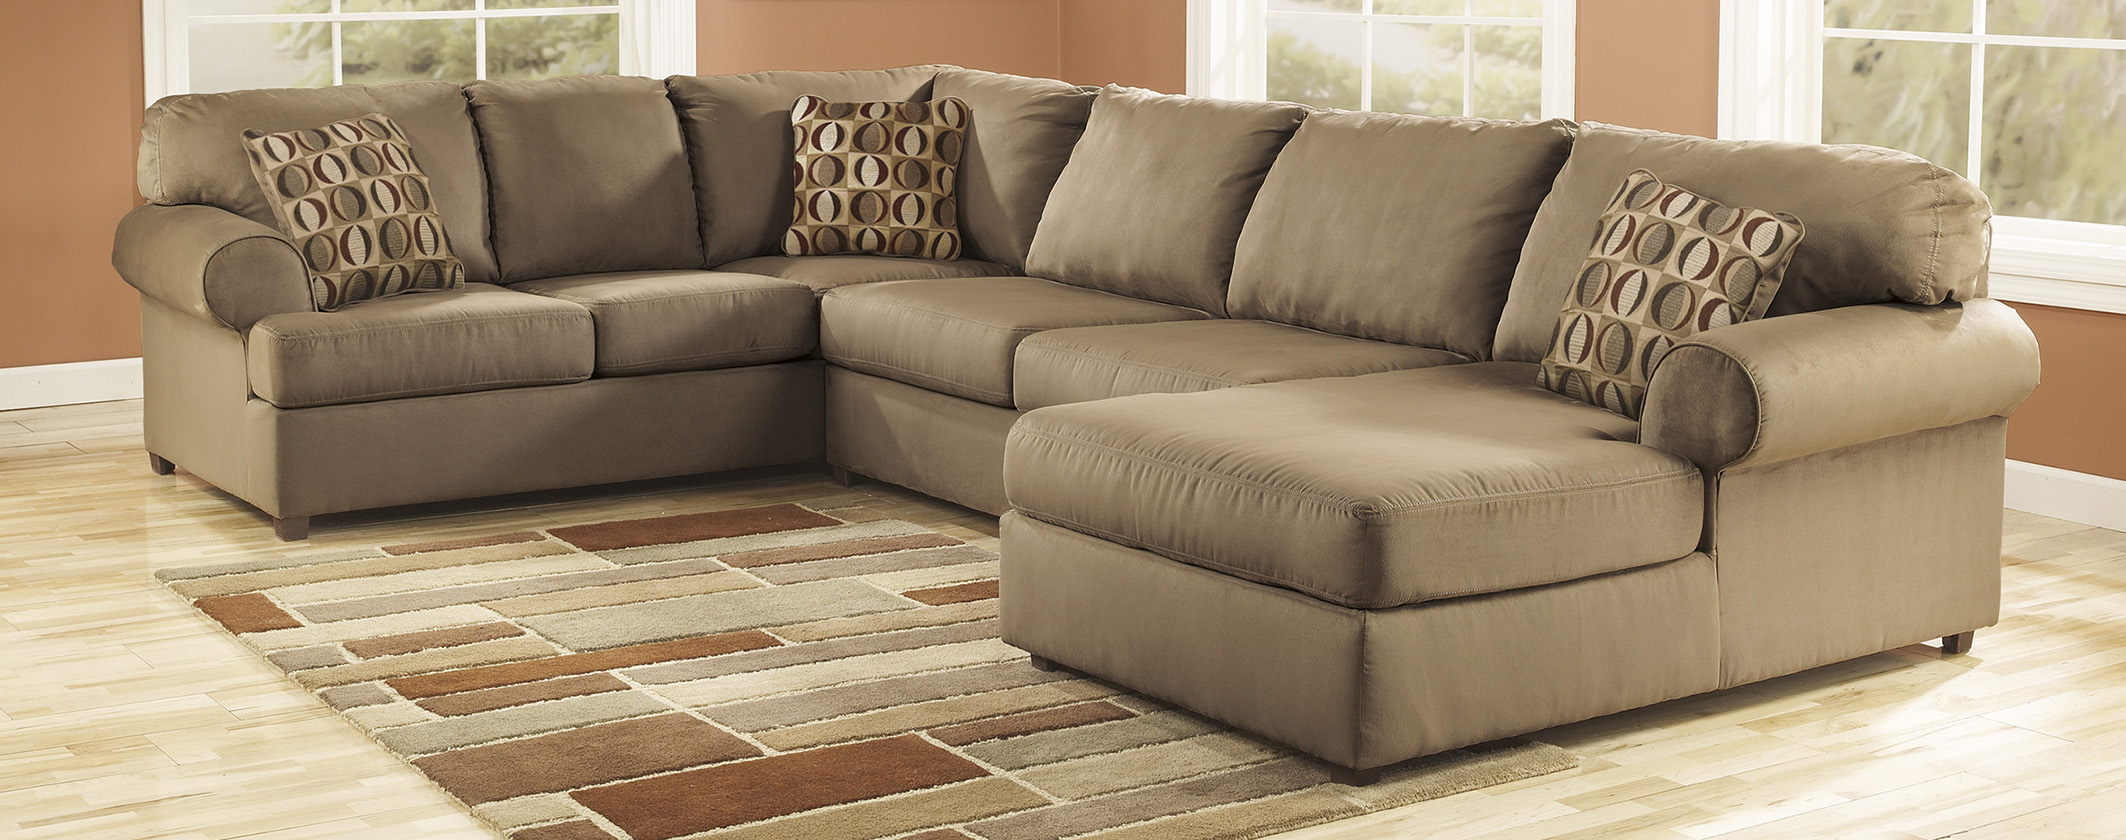 cowan sectional sofa with left arm facing sofa armless